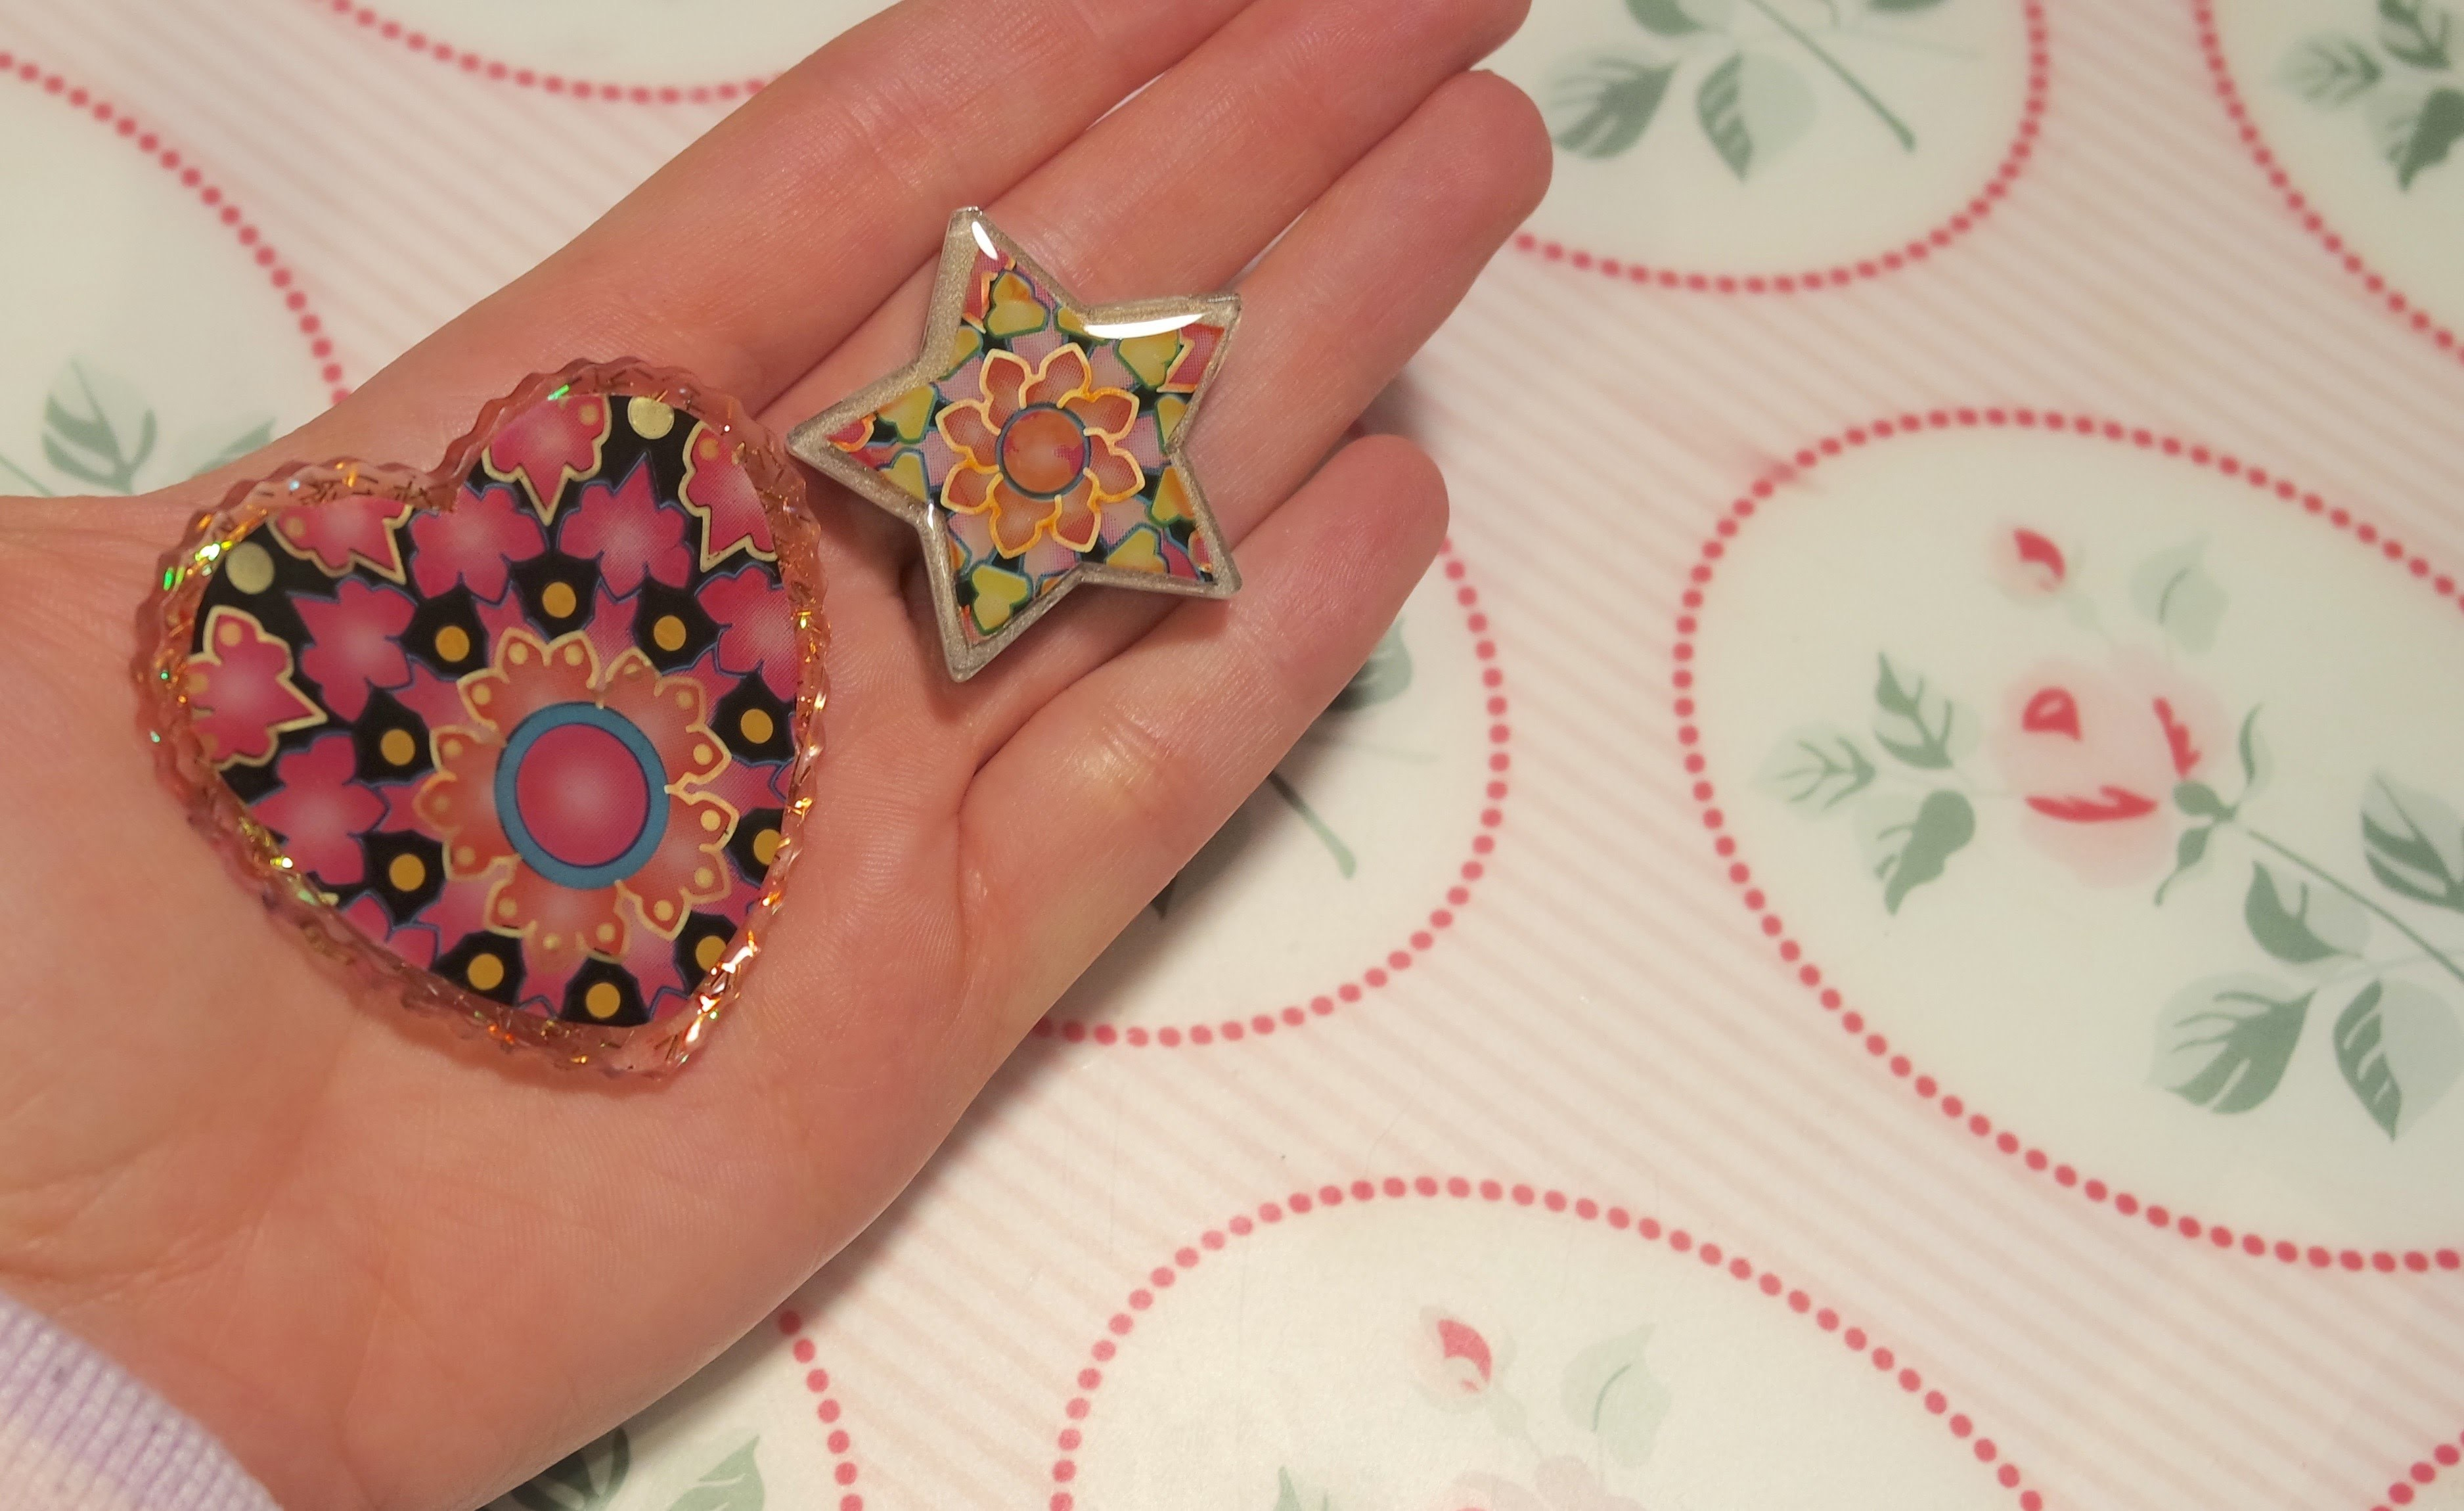 DIY 2 Resin Charms in riciclo creativo!|Creative recycling!